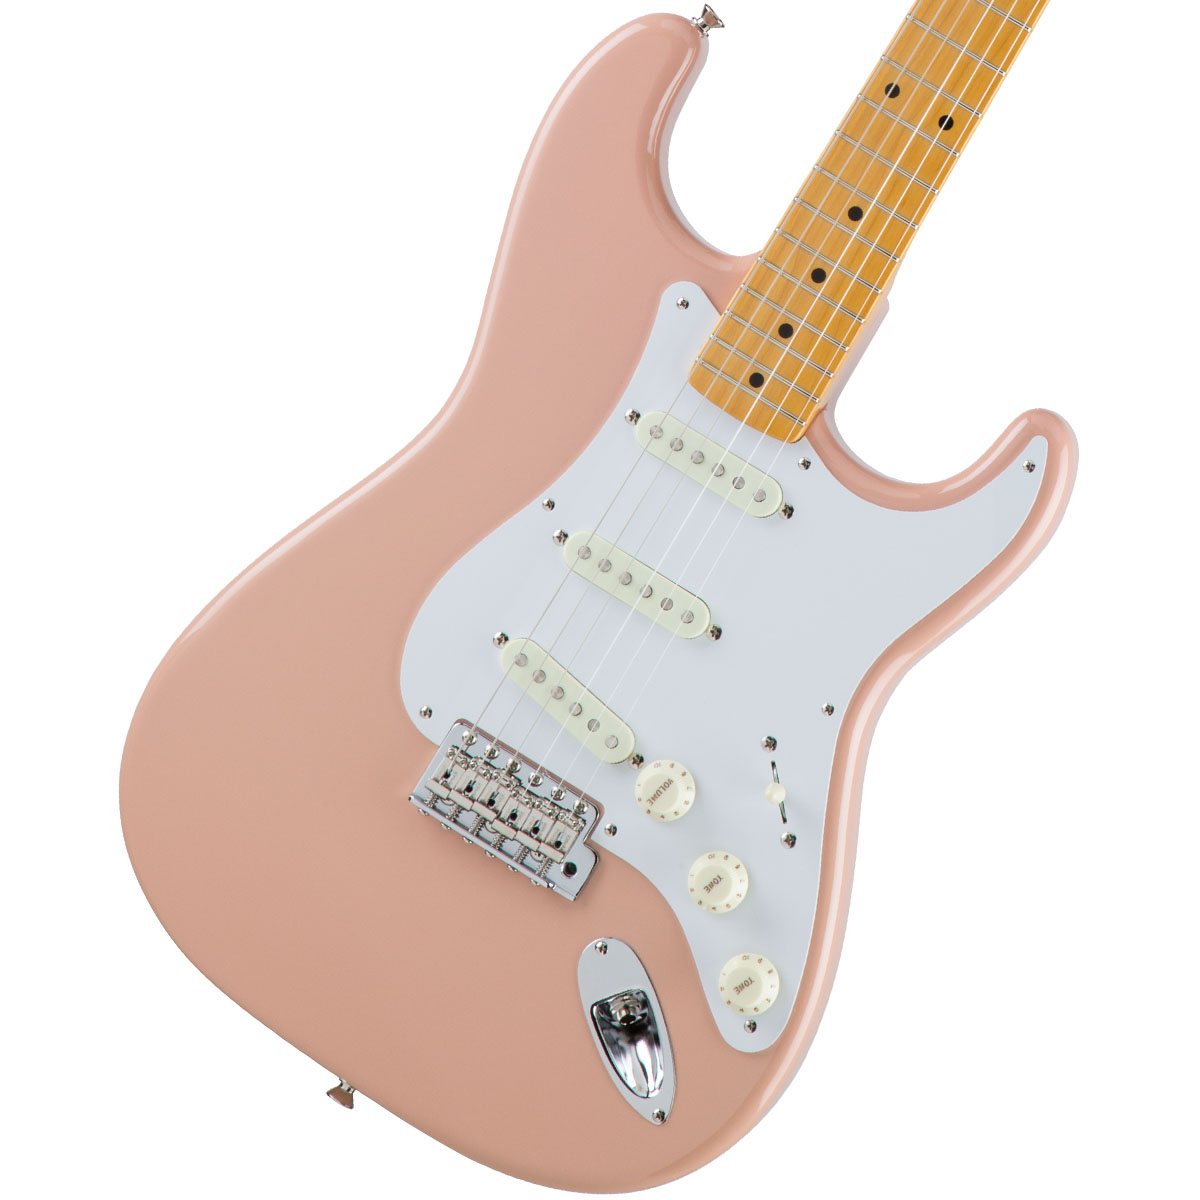 Fender / Made in Japan Traditional 58 Stratocaster Maple Fingerboard Flamingo Pink 【お取り寄せ商品】《カスタムショップのお手入れ用品を進呈/+671038200》